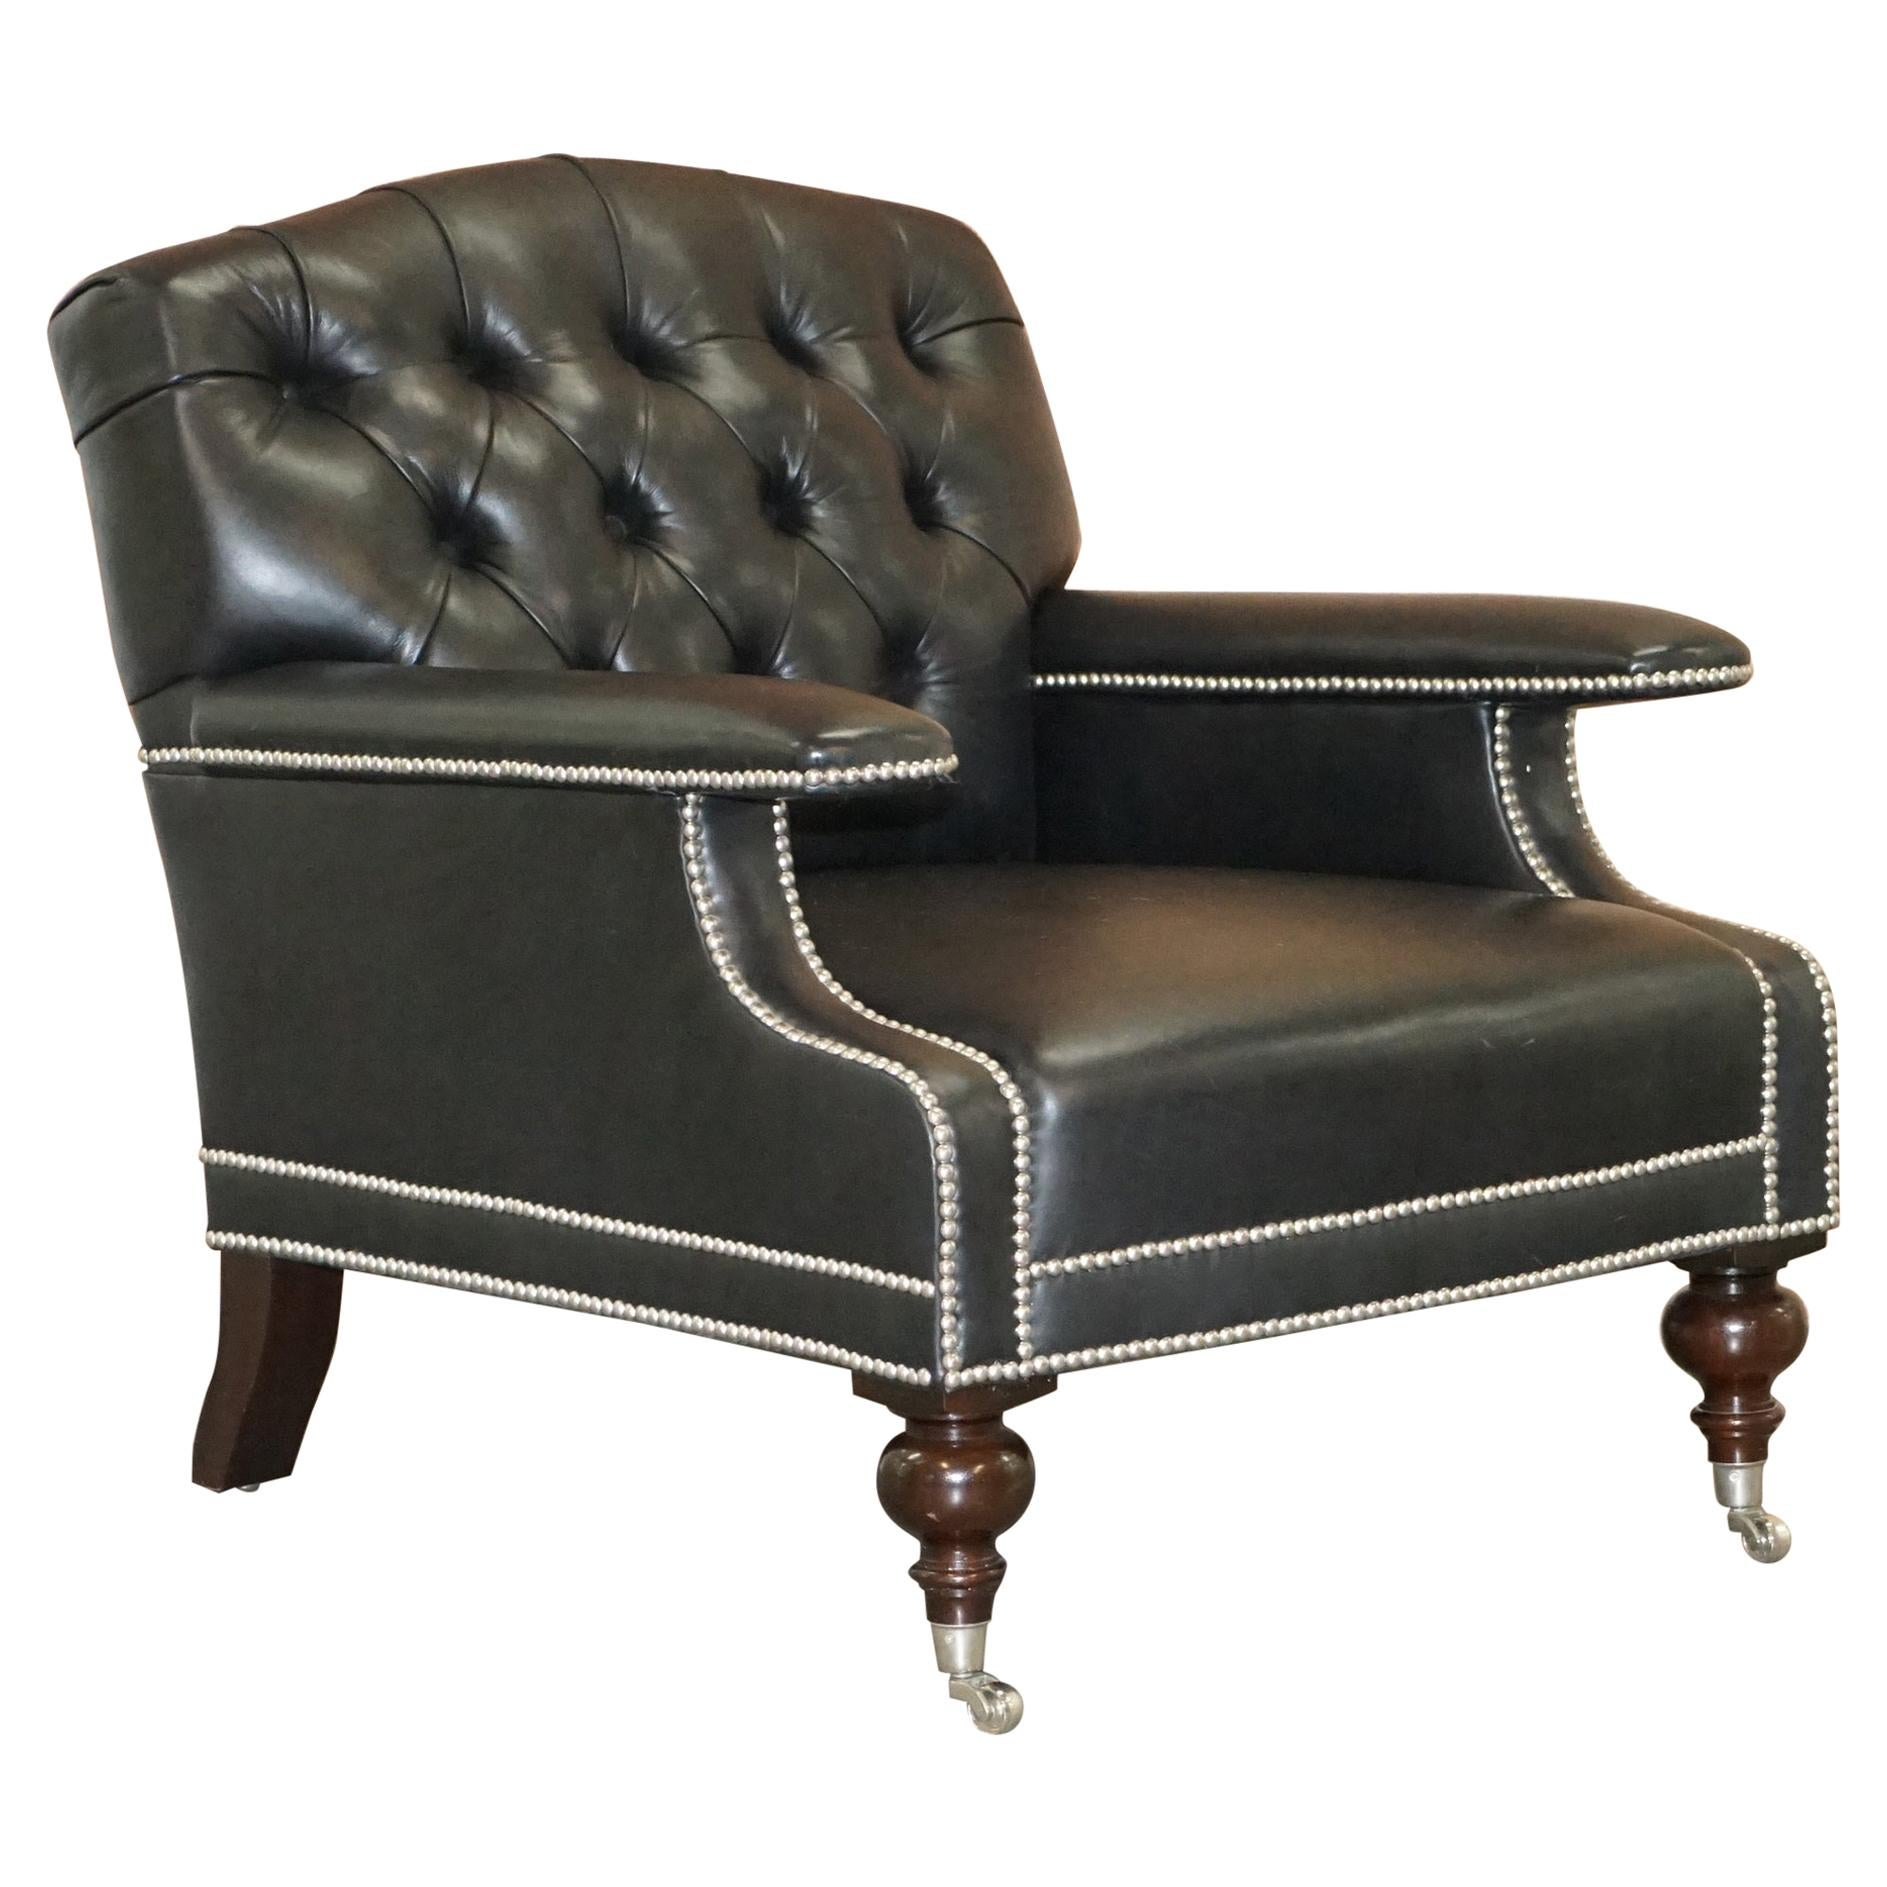 Ralph Lauren Alfred Black Leather Chesterfield Buttoned Club Armchair